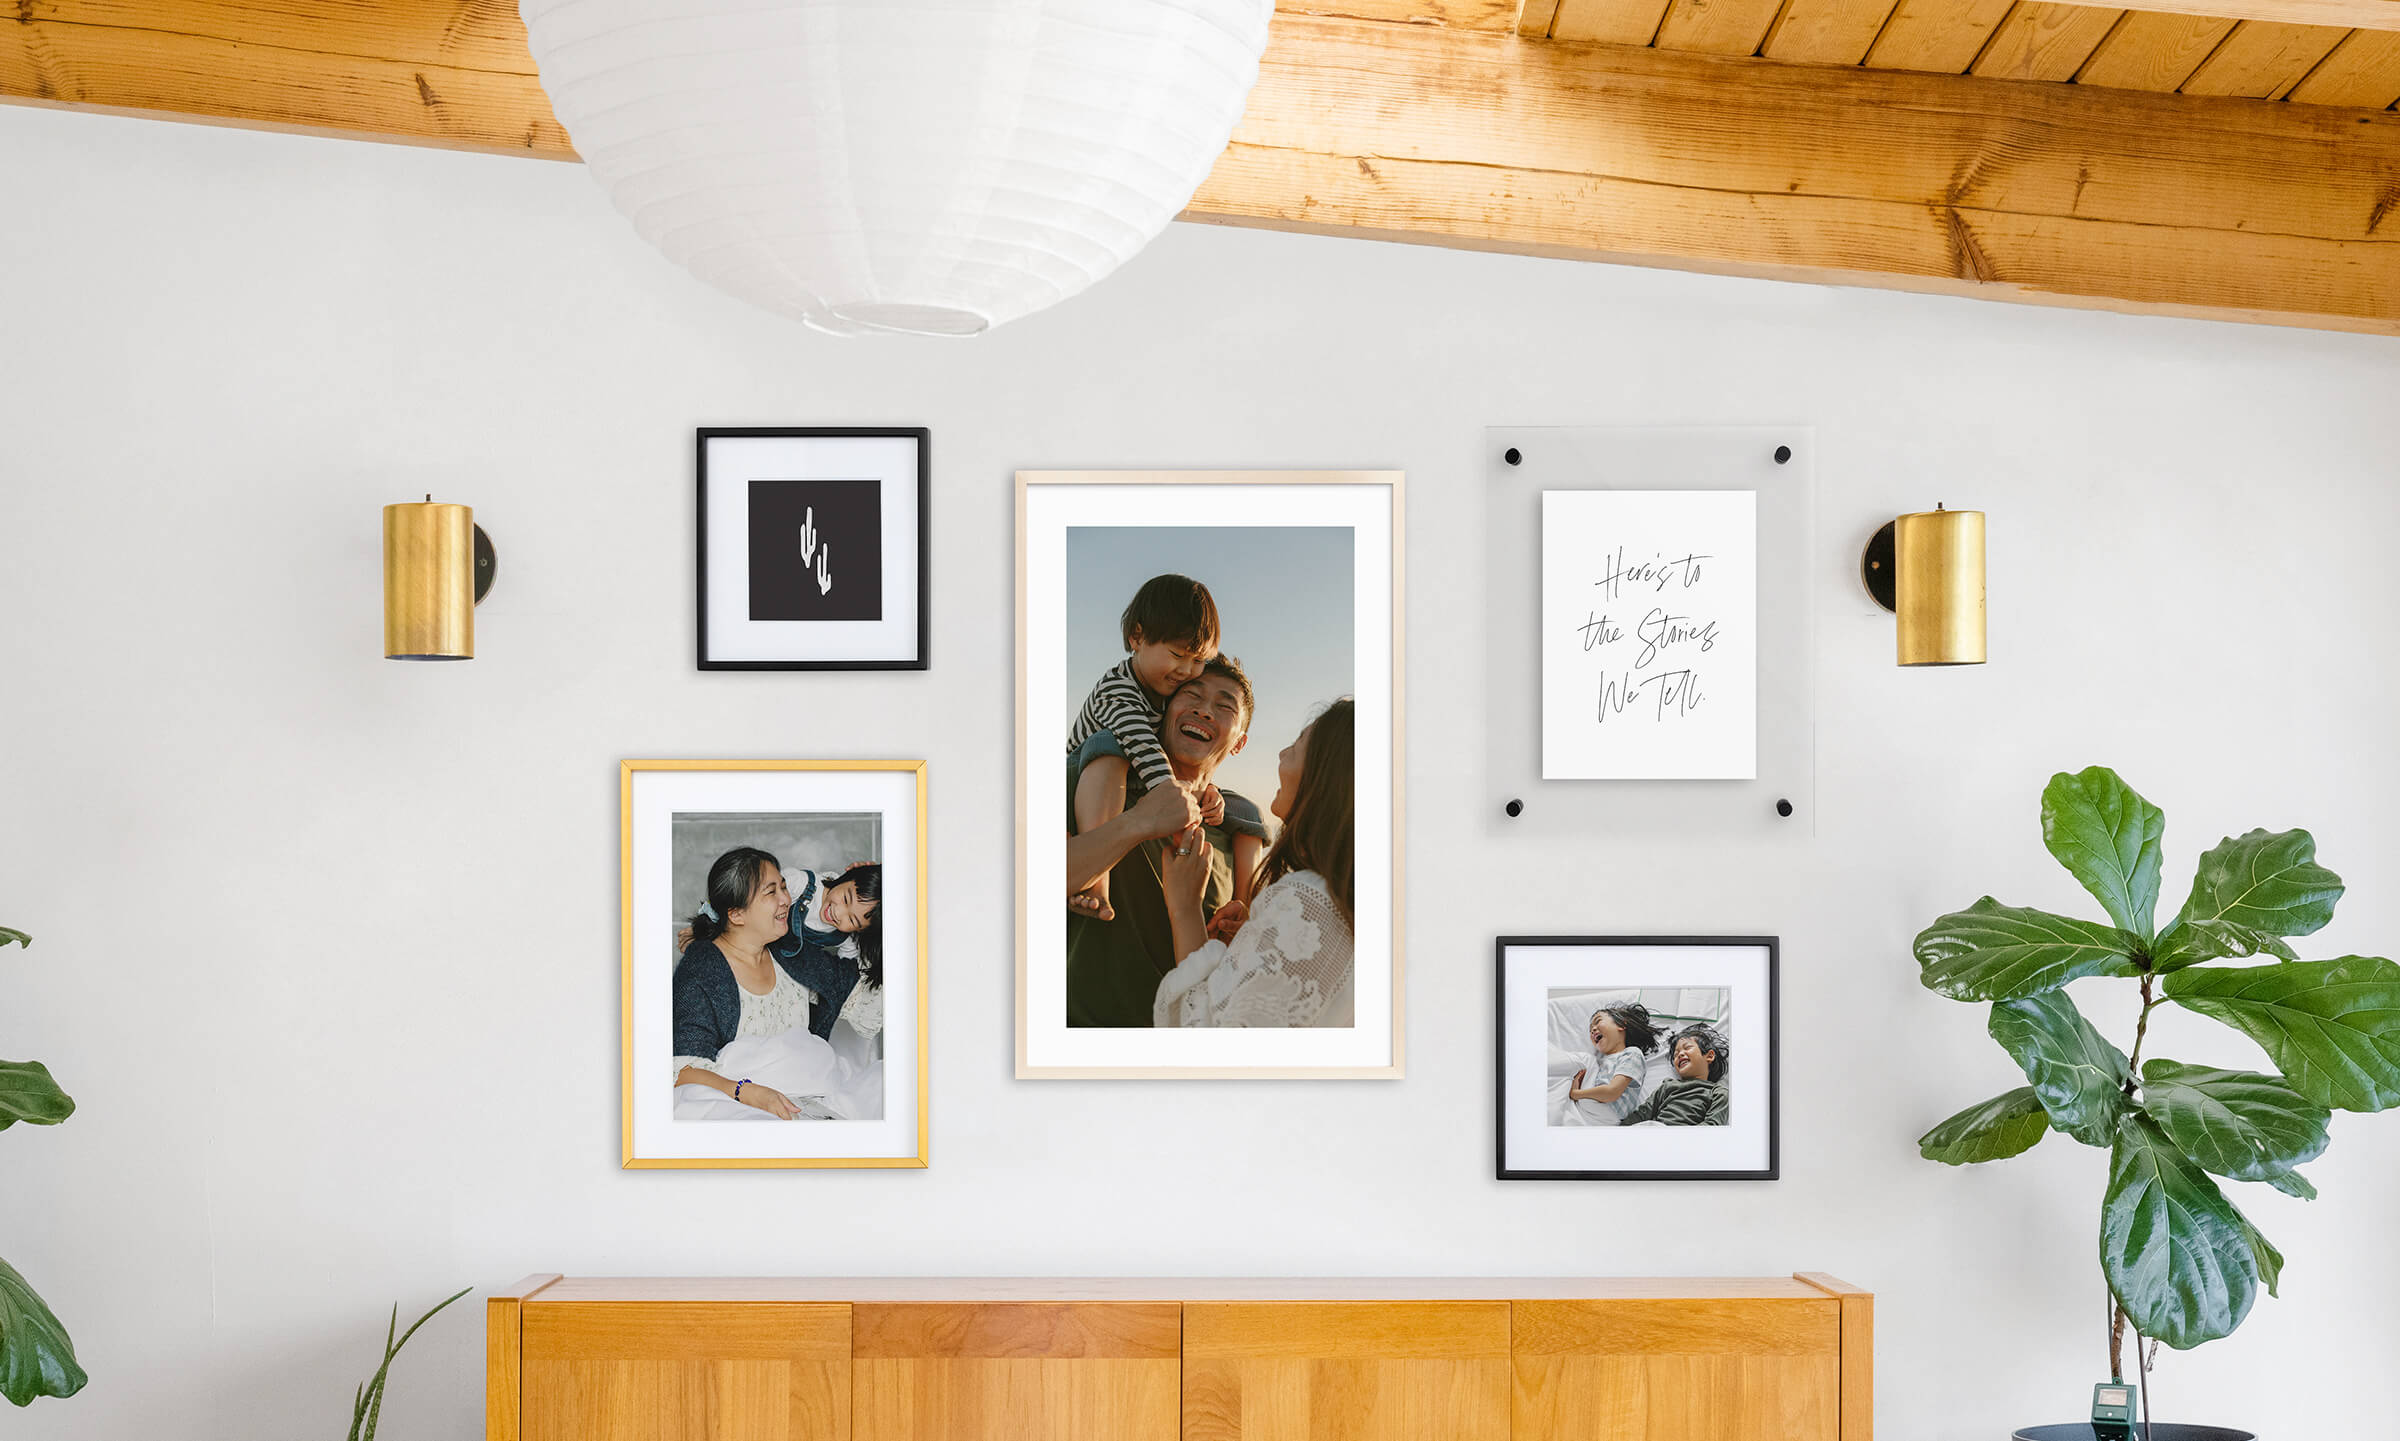 Gallery wall that mixes and matches sizes, styles, and finishes.